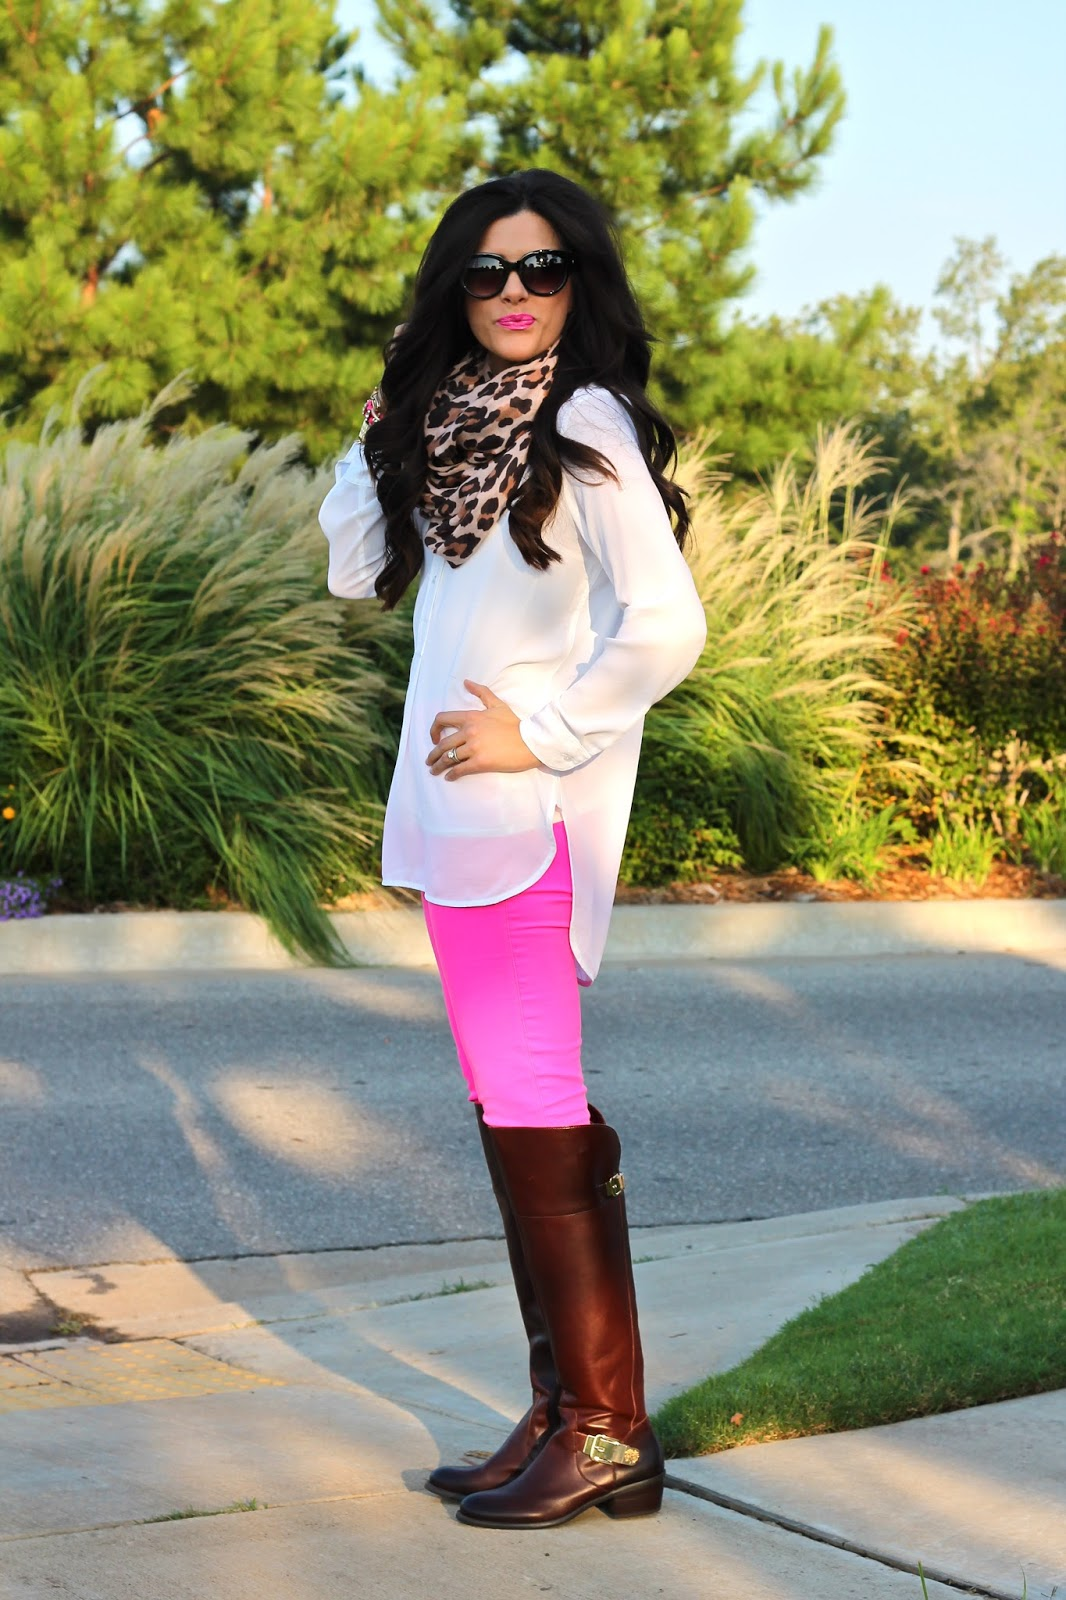 fall fashion, fall 2014 fashion, hot pink pants, white tunic, leopard print scarf, leopard scarf, cat eye sunglasses, forever 21, j.crew, h&m, brunette, vince camuto, fall boots, over the knee boots, over the knee leather boots, vince camuto bocca boot, bocca boot, fall boots nordstrom, michael kors gold watch, fashion blog, fashion bloggers